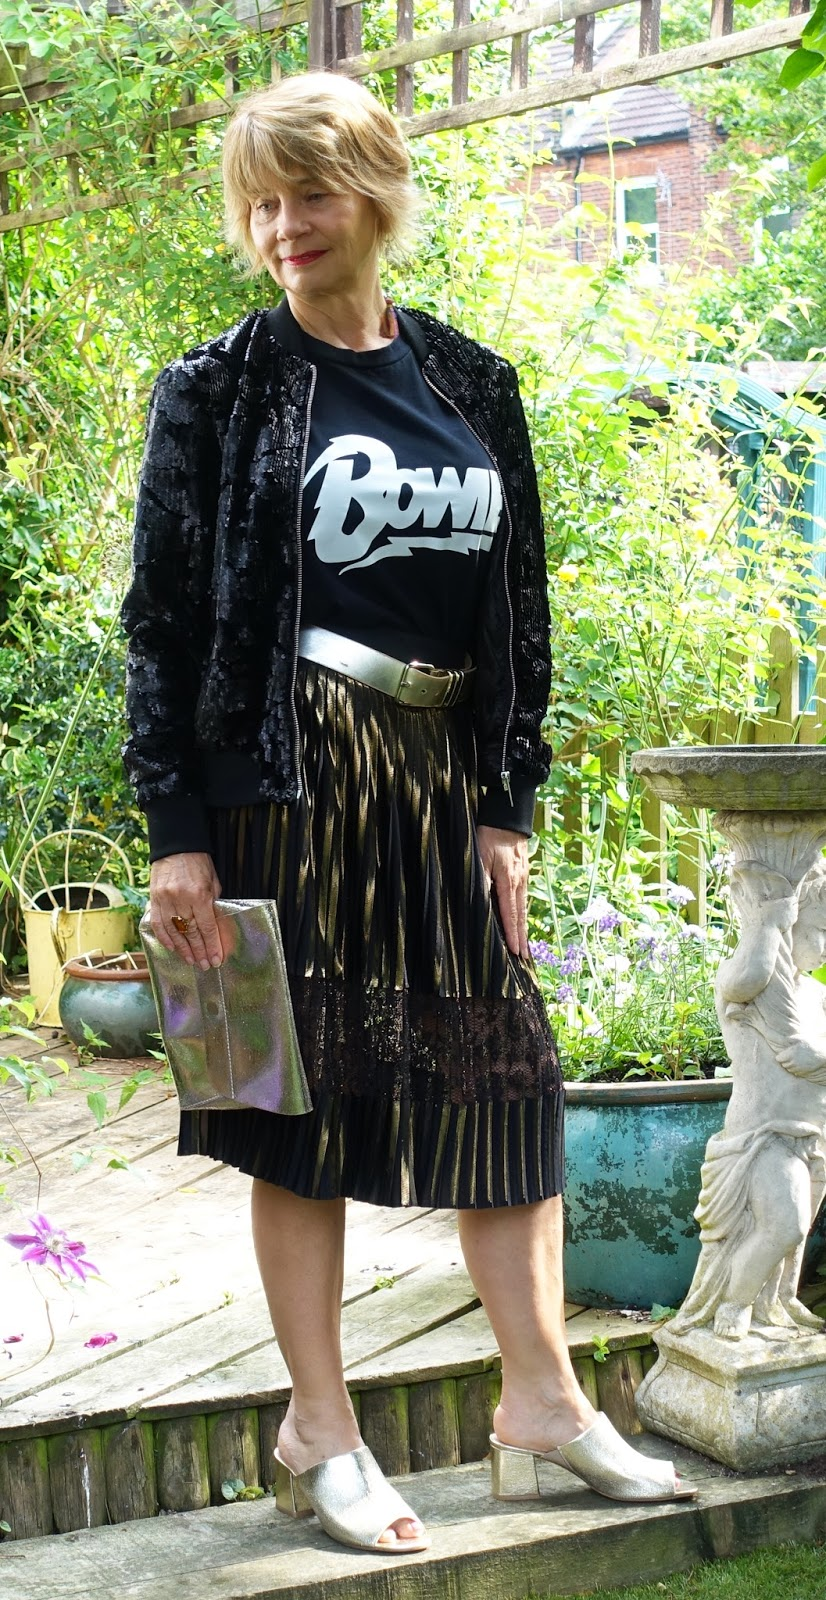 Gail Hanlon, blogger for Is This Mutton, in the 5 Over 50 Challenge Marvellous Metallics